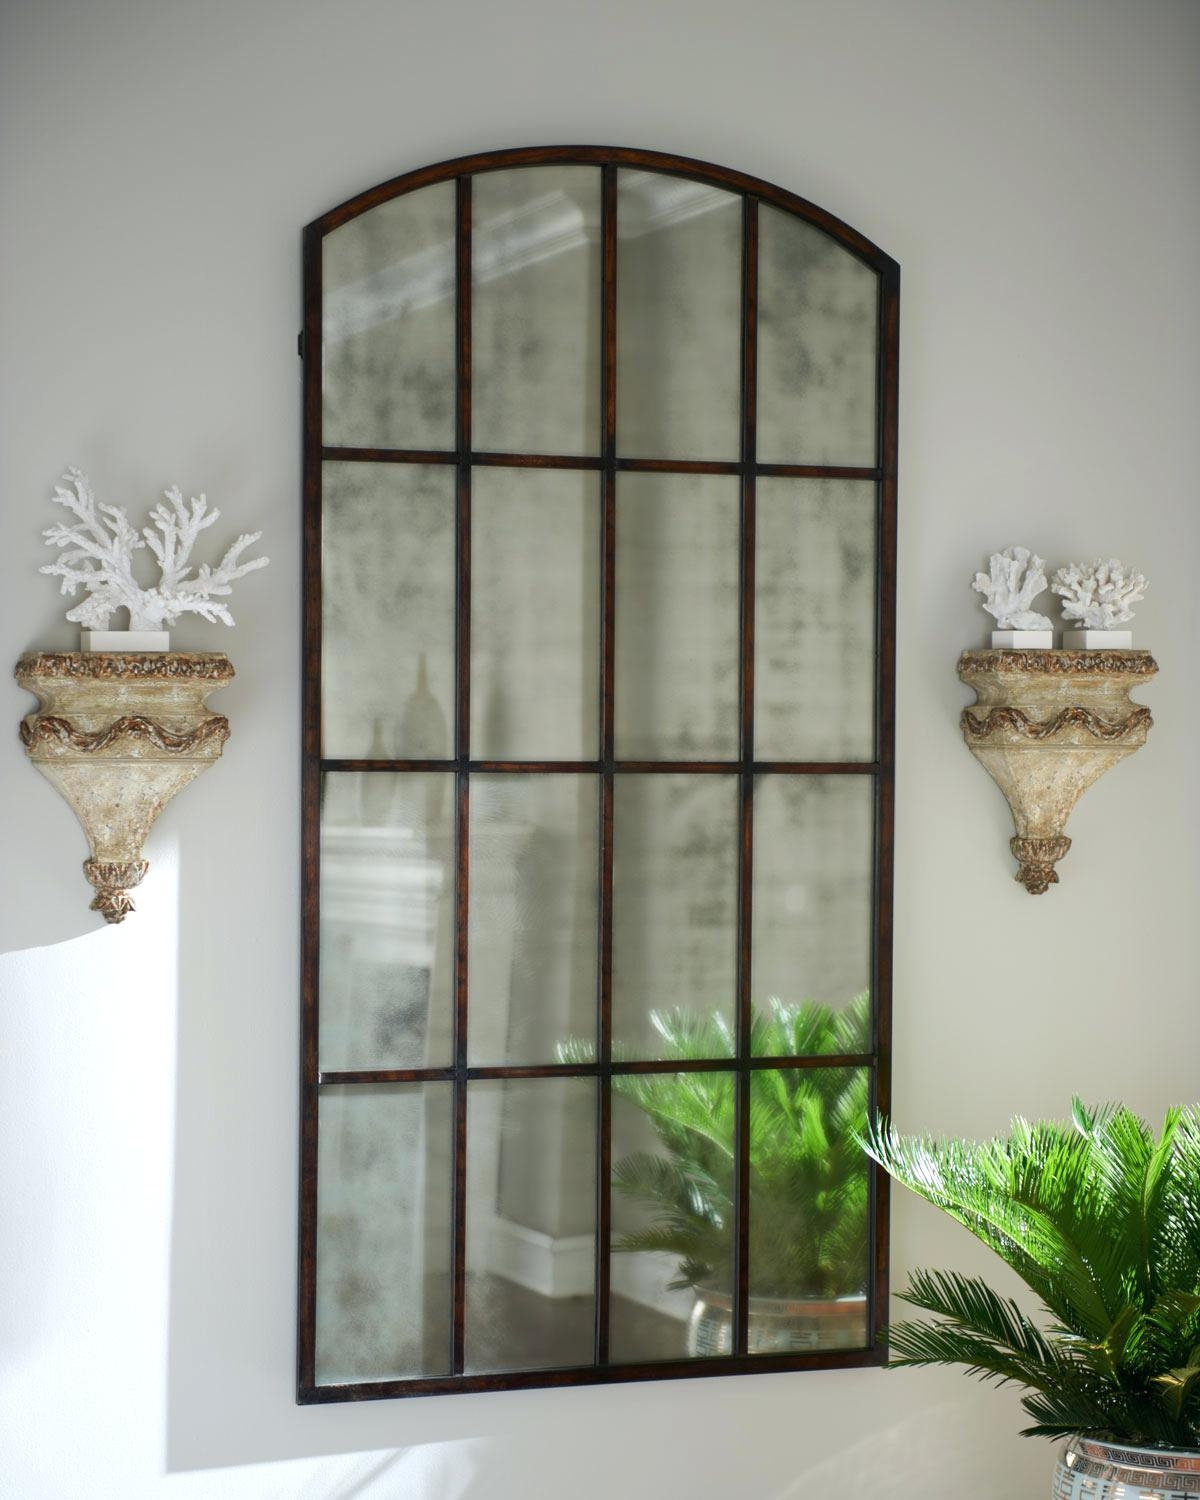 Large Panel Wall Mirrors Arched Window Pane Mirror Shopwiz With Large Arched Mirror (Image 11 of 15)